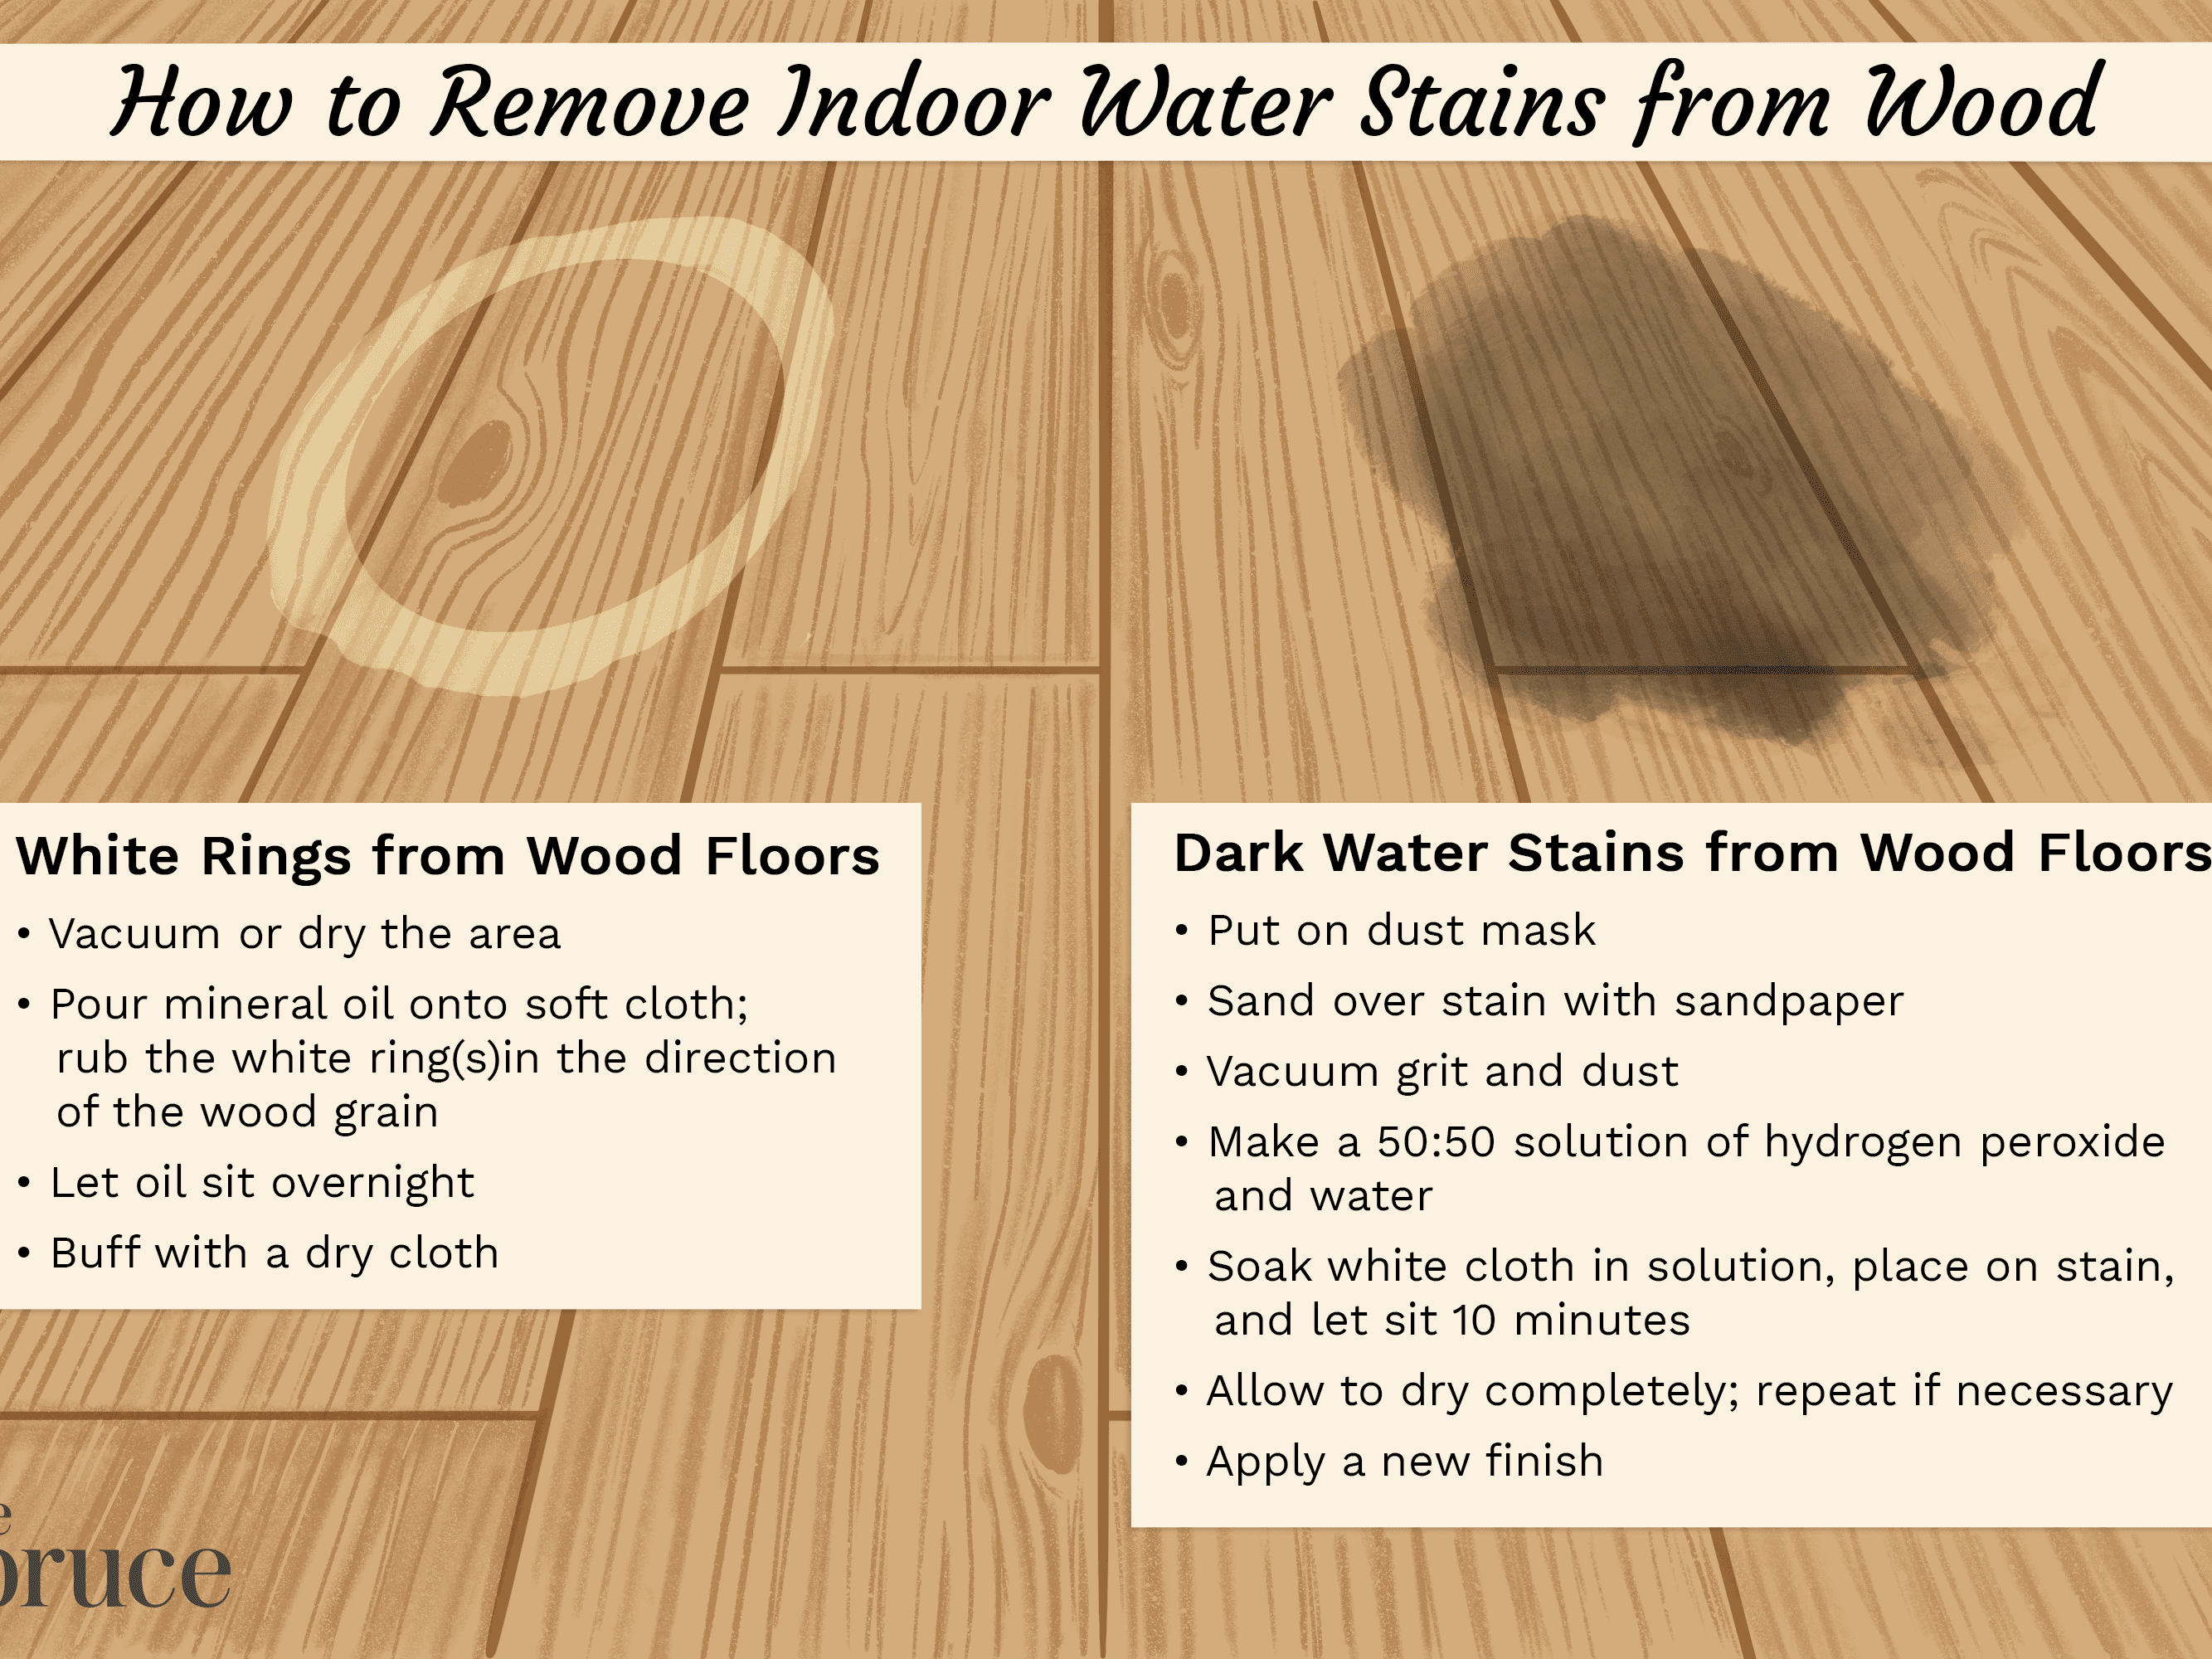 How To Remove Indoor Water Stains From Wood - How To Remove Hot Stains From Wooden Table